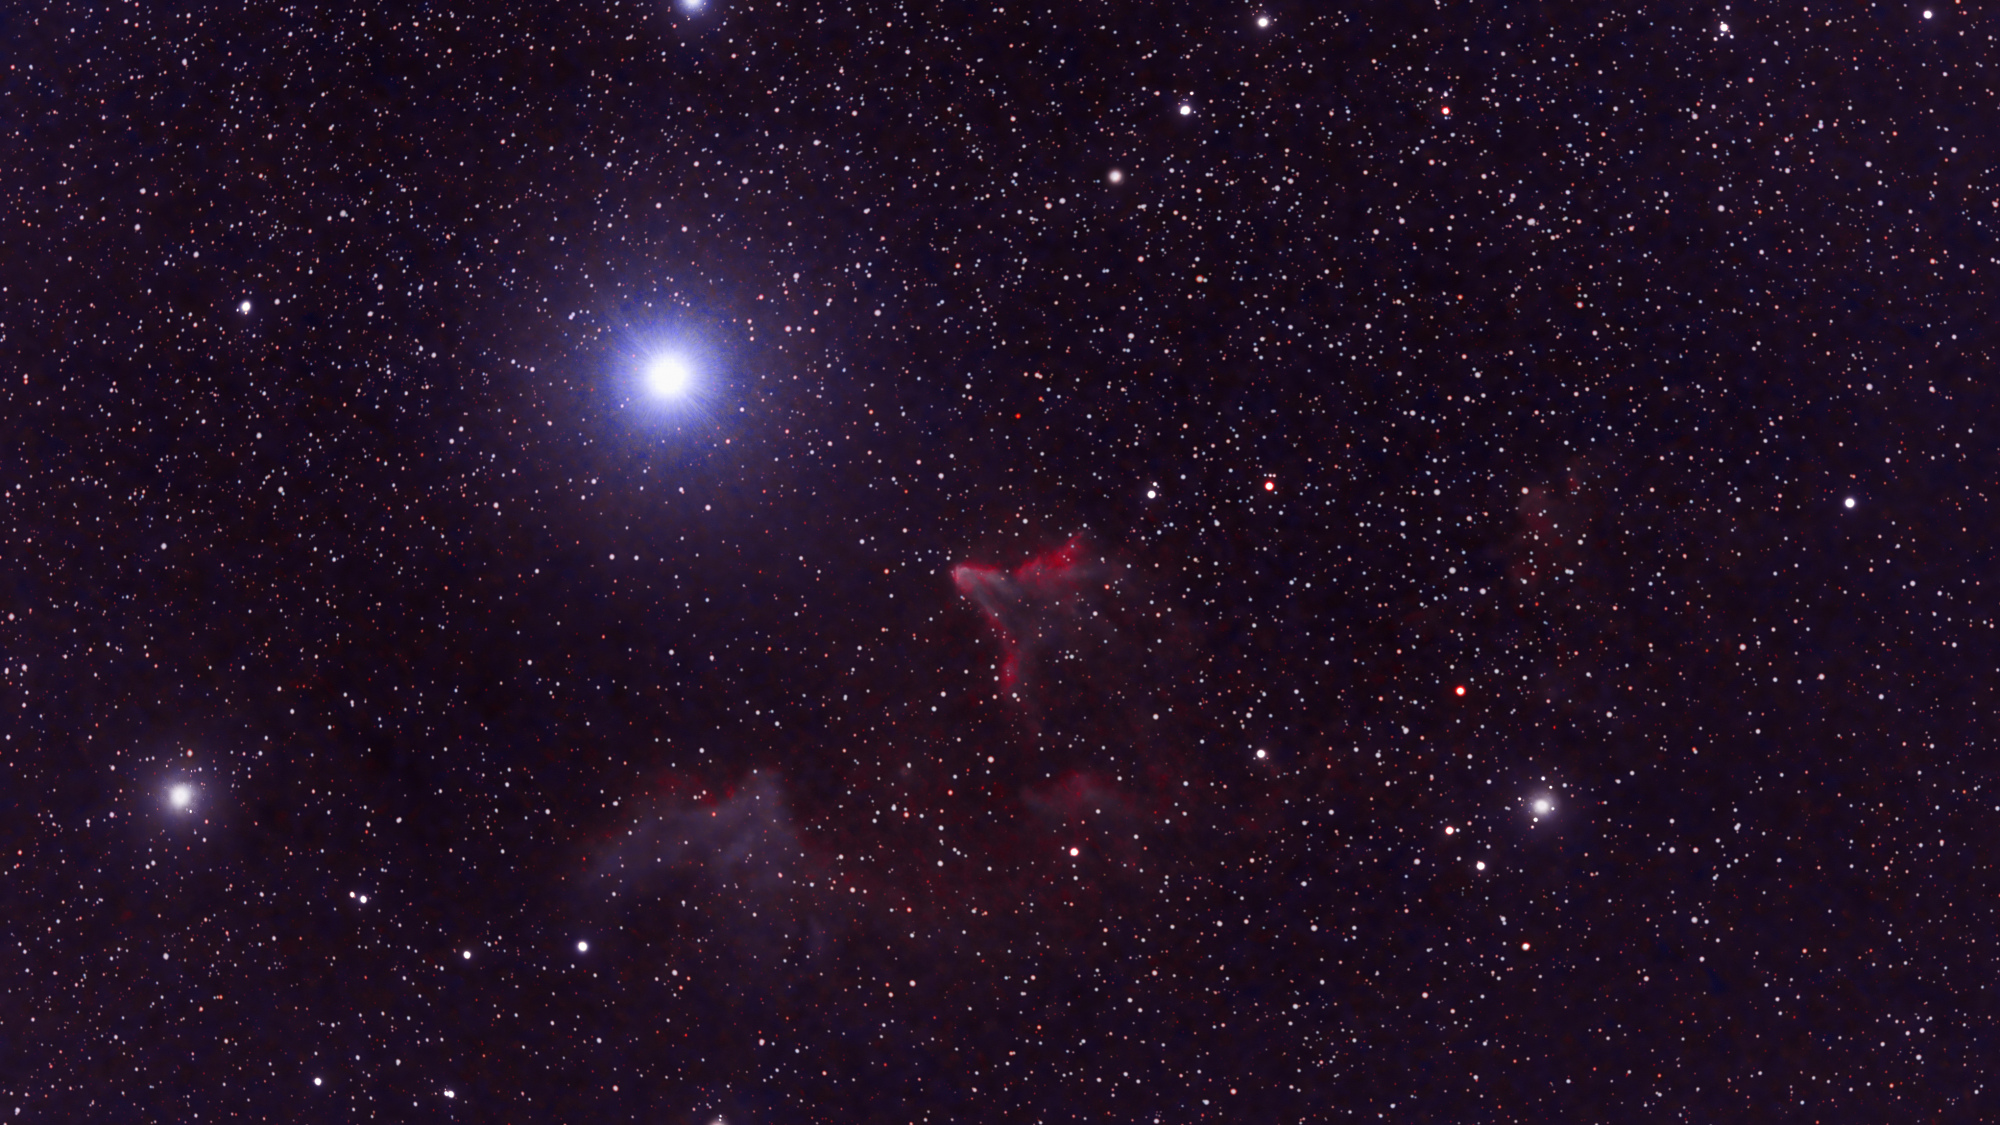 IC63_Nebuleuse_fantome_67x180s_32bits_stacked_processed-TIF_V3.2.jpg